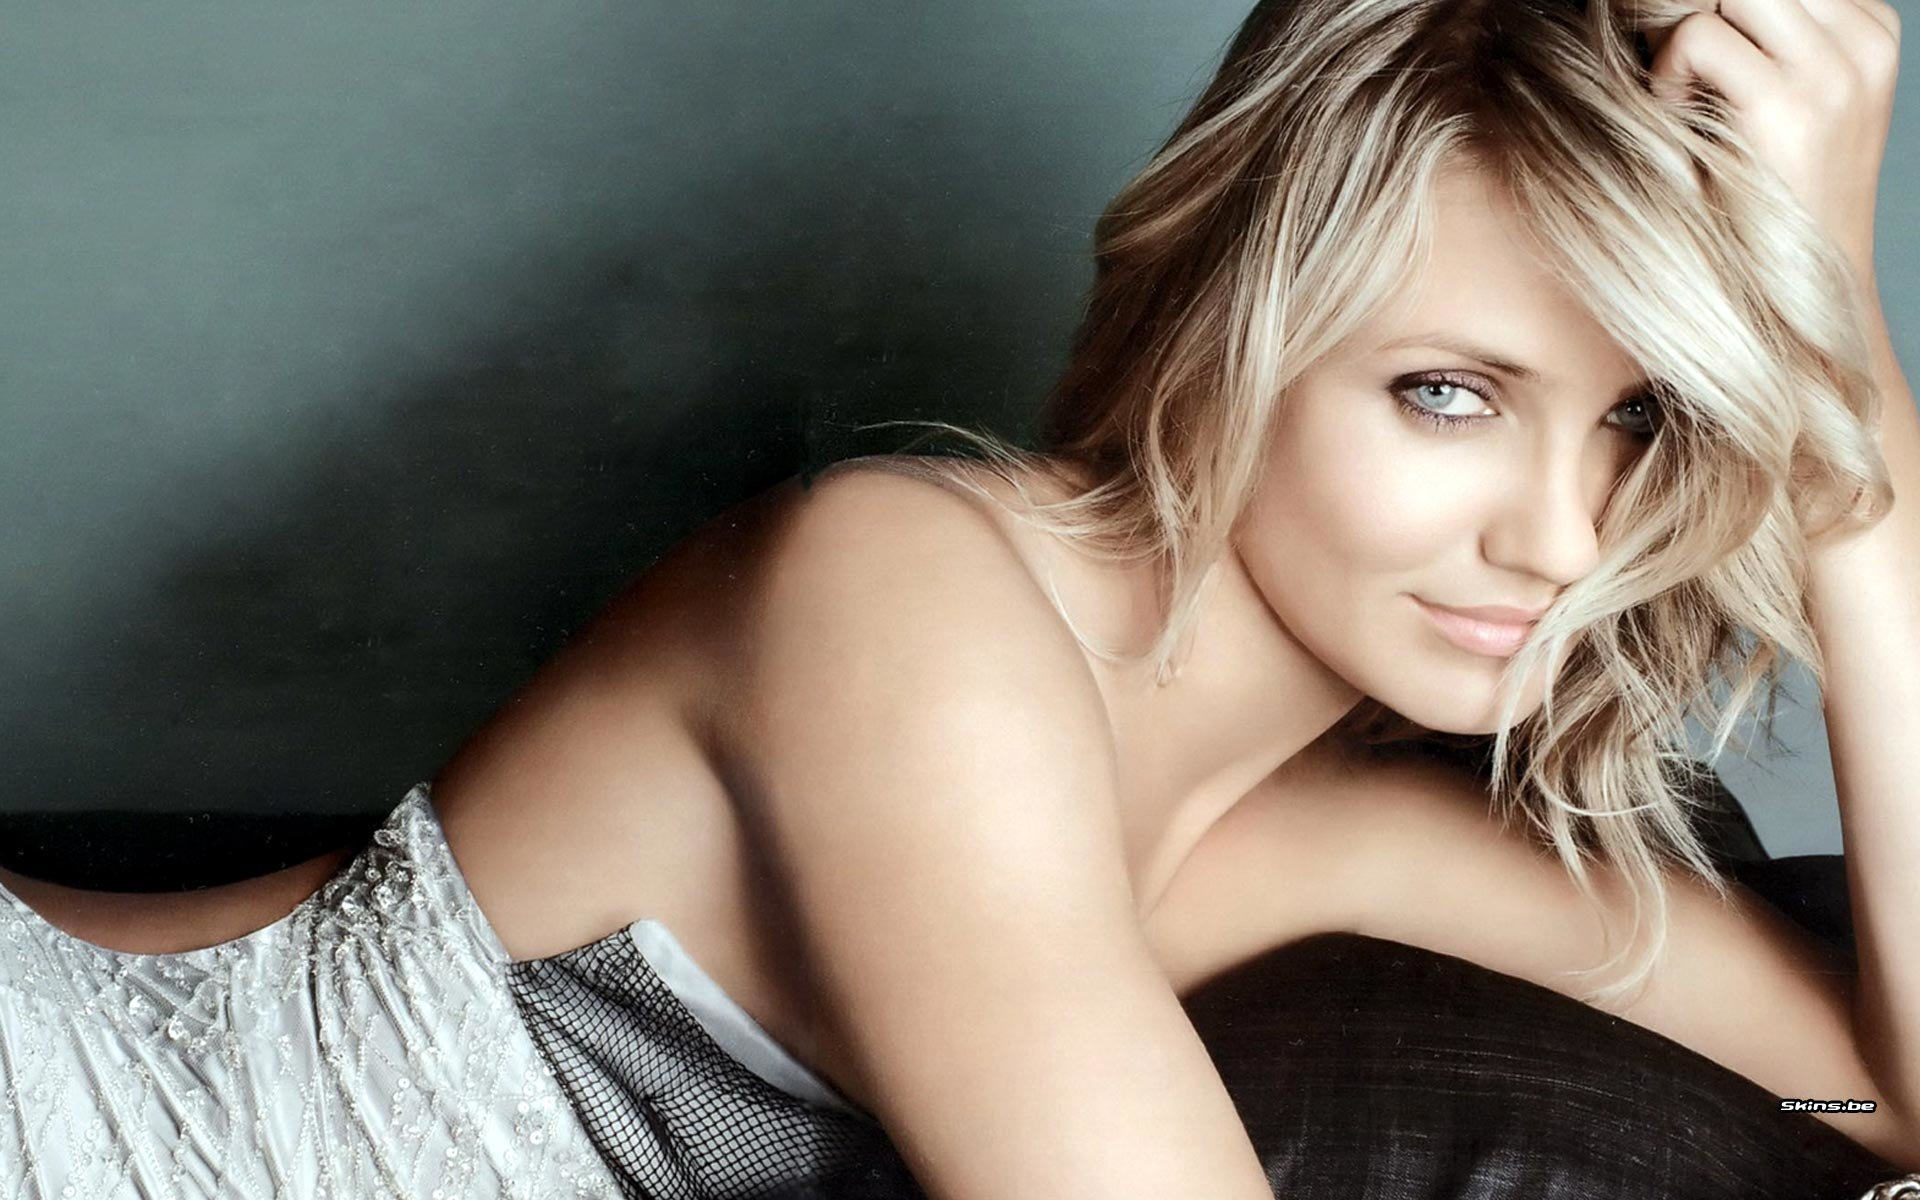 Awesome Cameron Diaz free wallpaper ID:129734 for hd 1920x1200 desktop